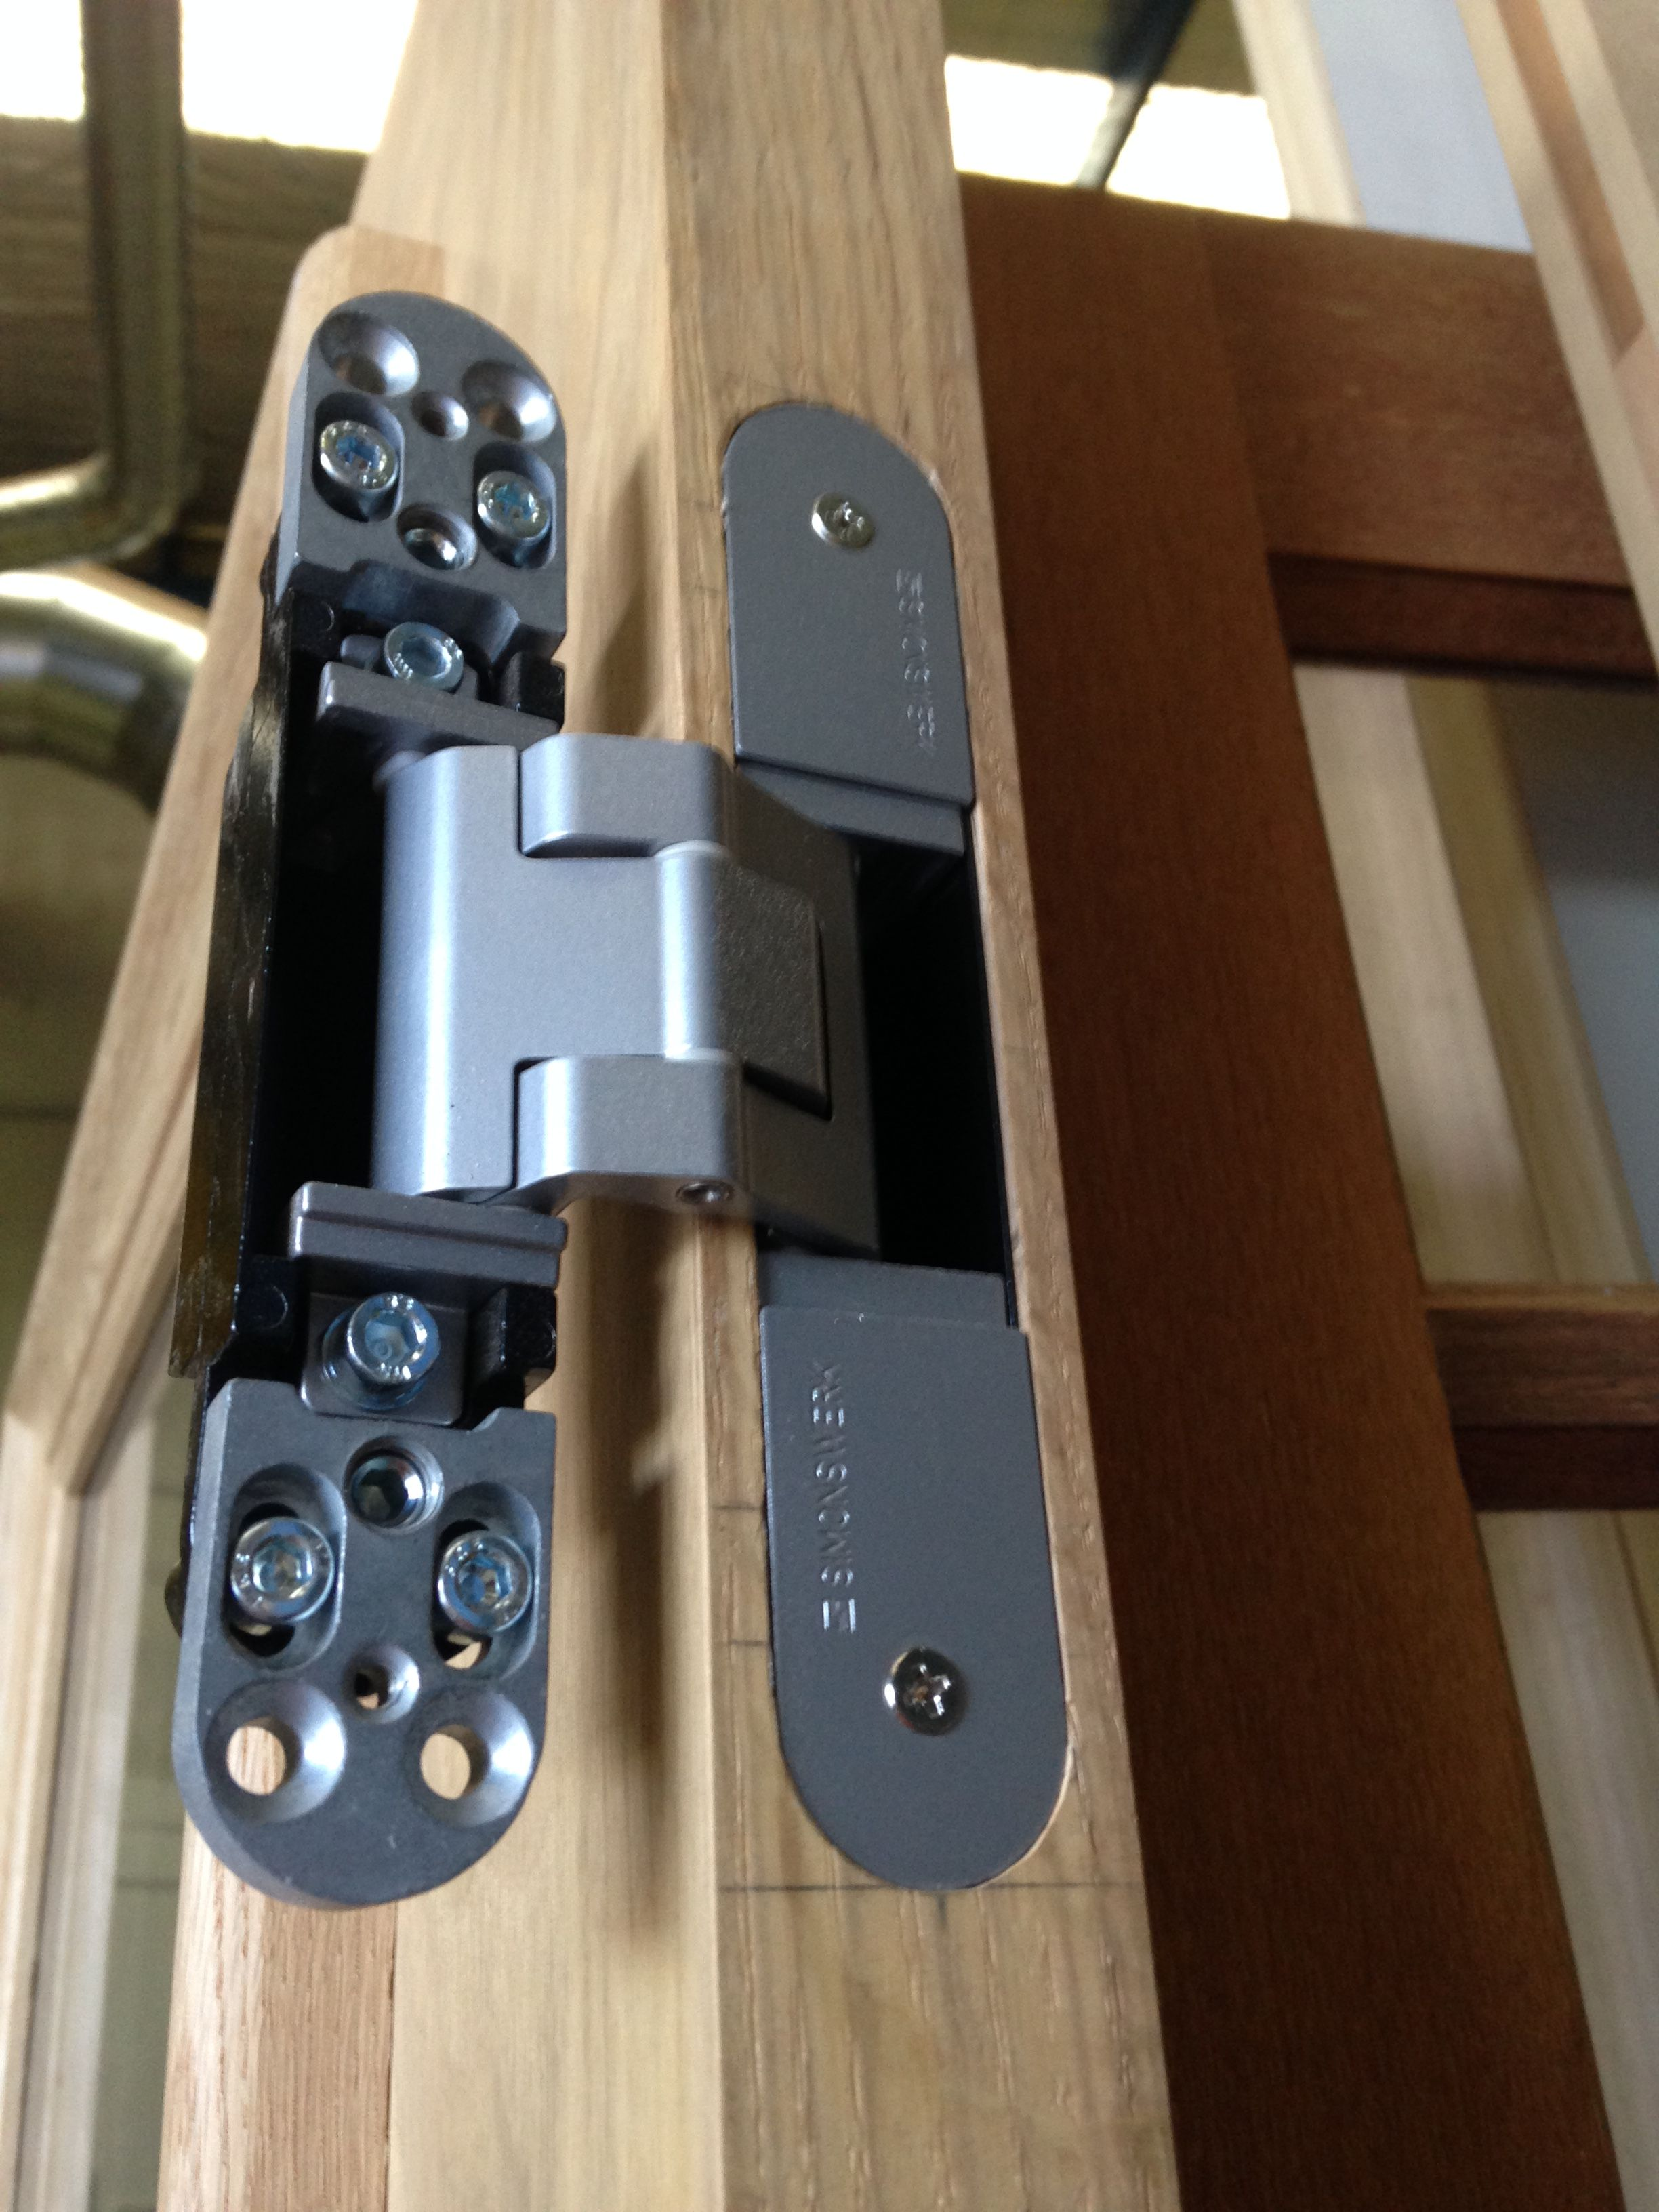 Concealed hinge types of hinges 10 most common designs today bob - Simonswerk Tectus Concealed Hinges Factory Fitted